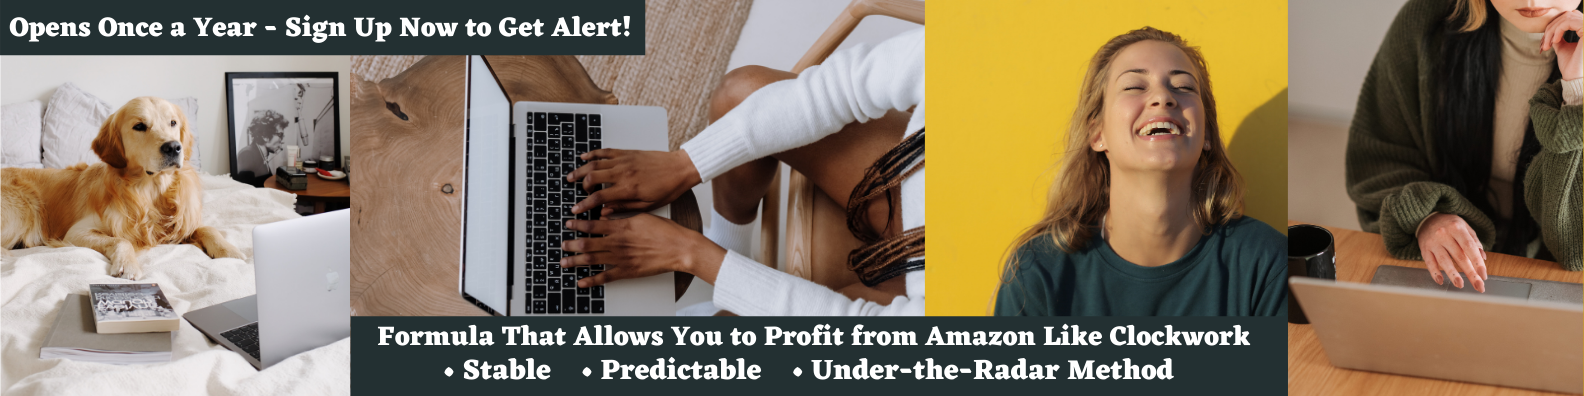 best way to sell on amazon - flexible, ethical, profitable